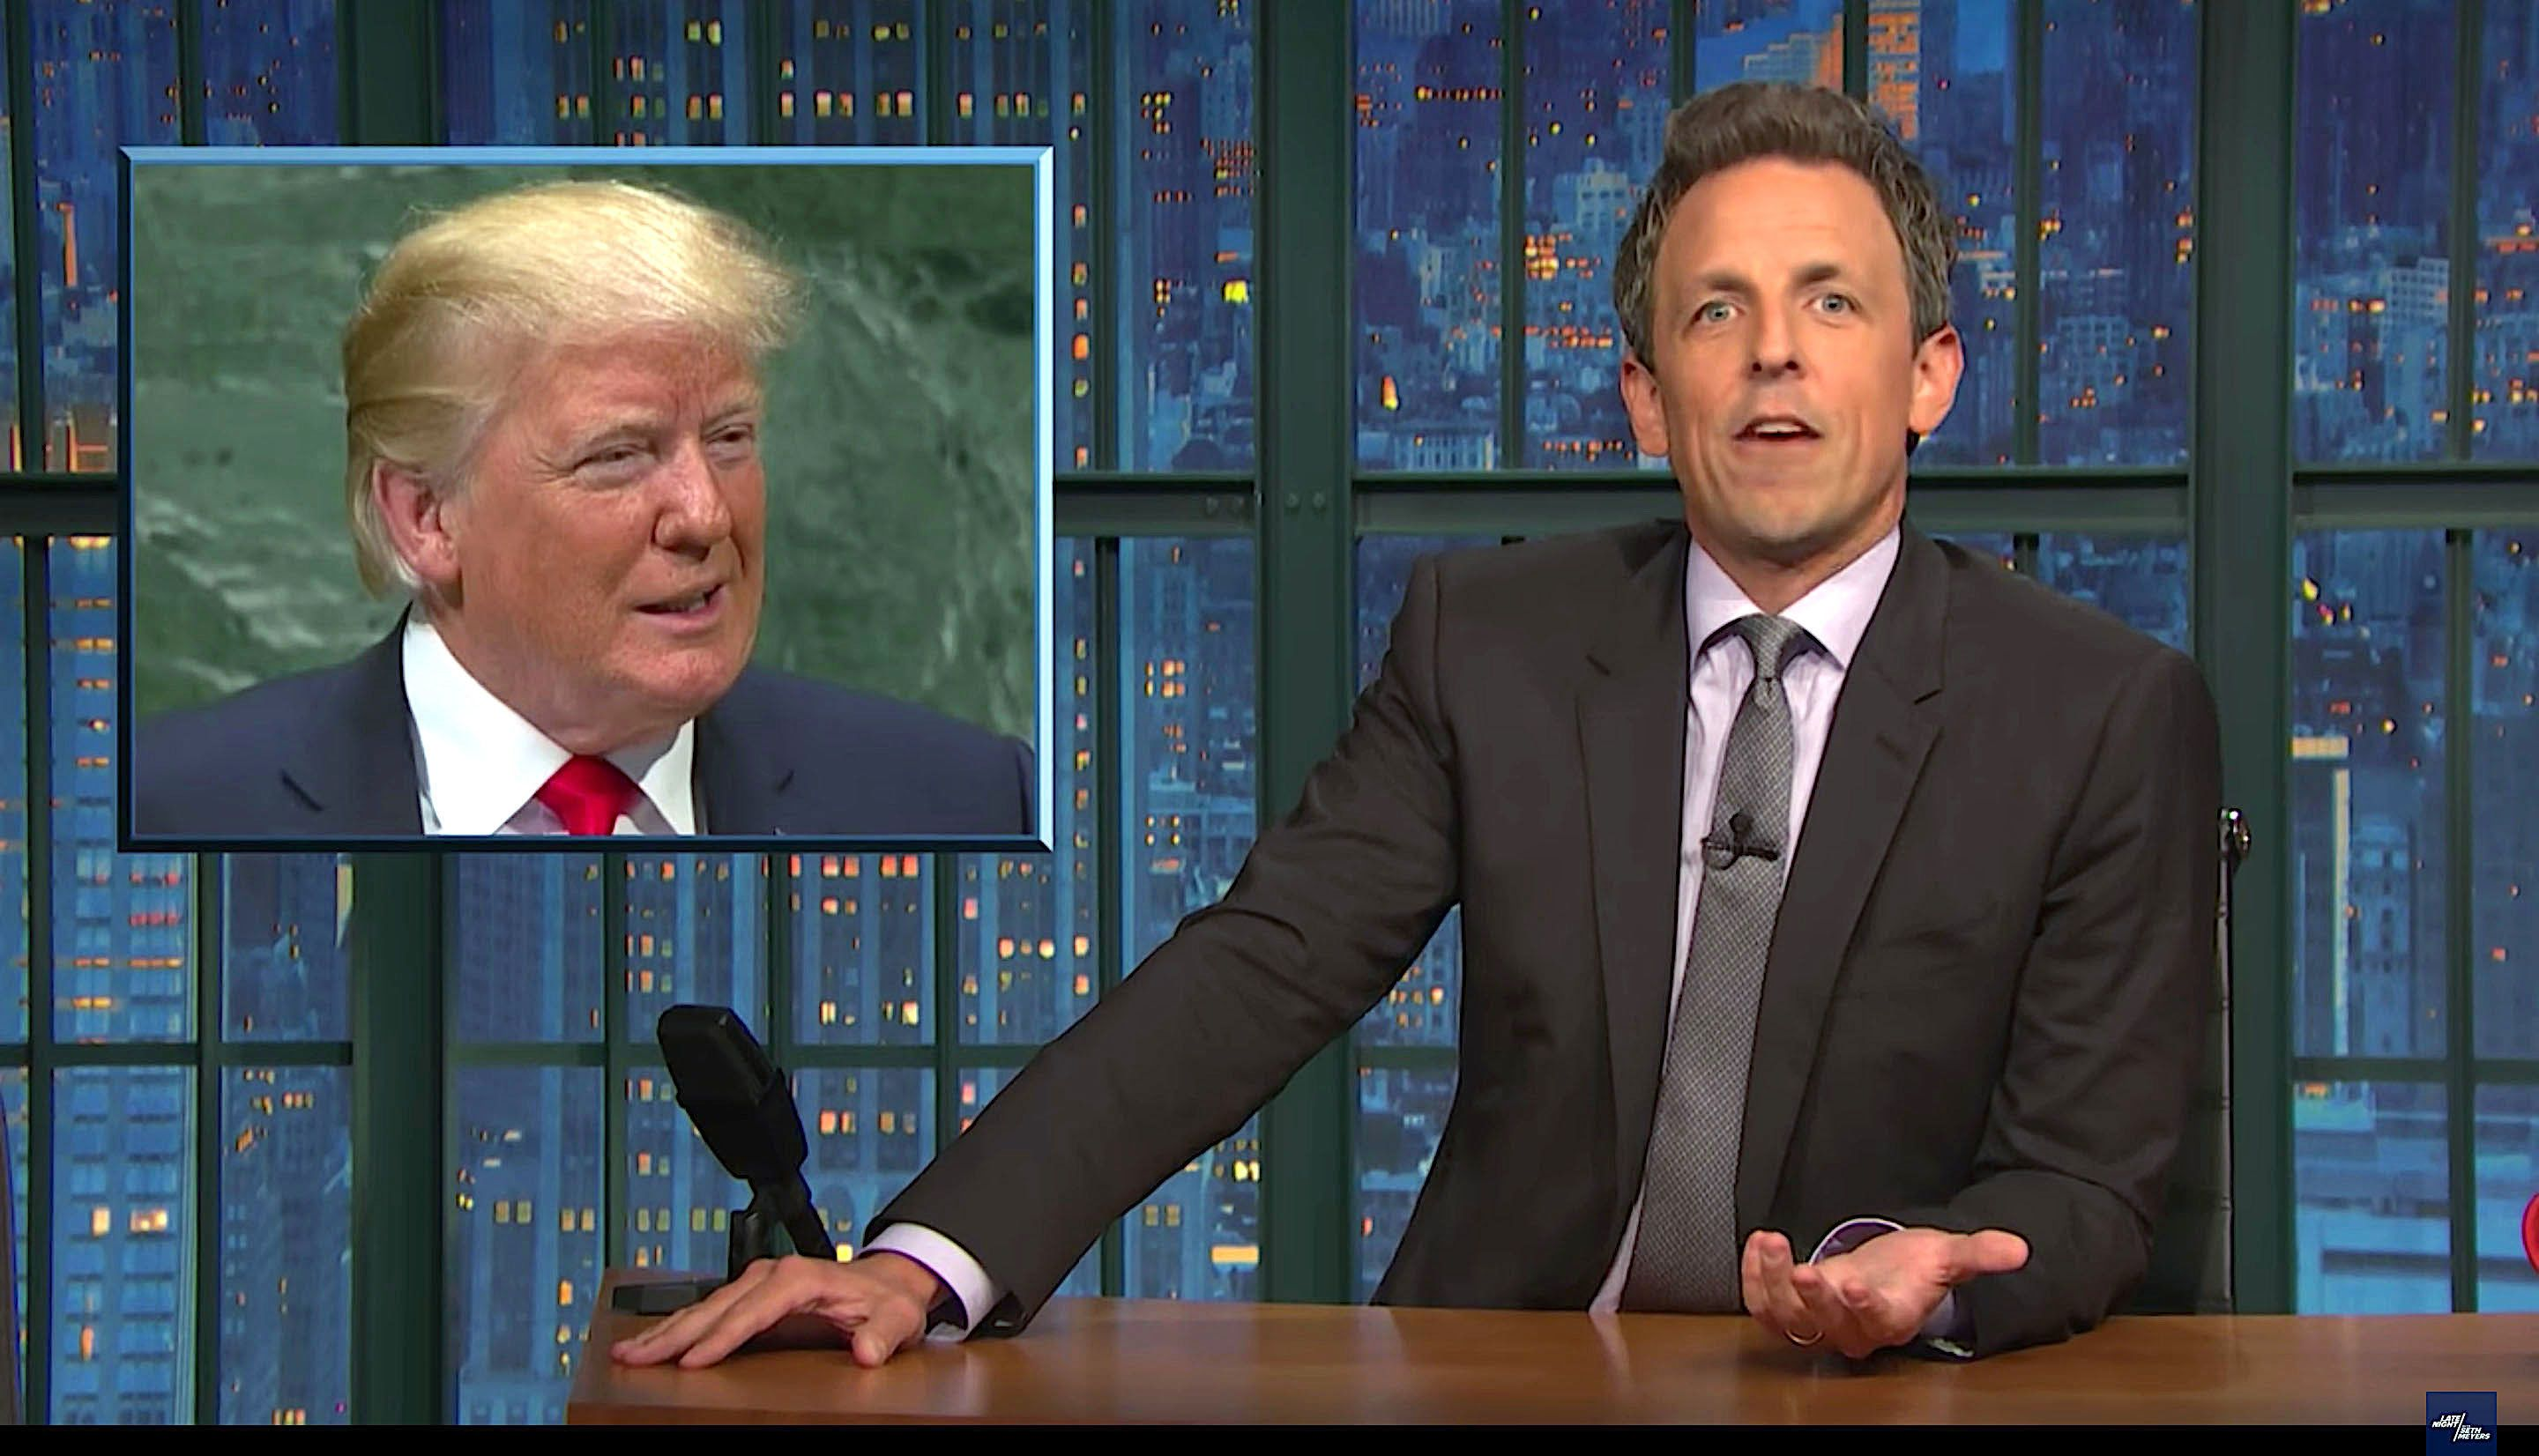 Seth Meyers of Late Night rips President Donald Trump for his UN speech and news conference